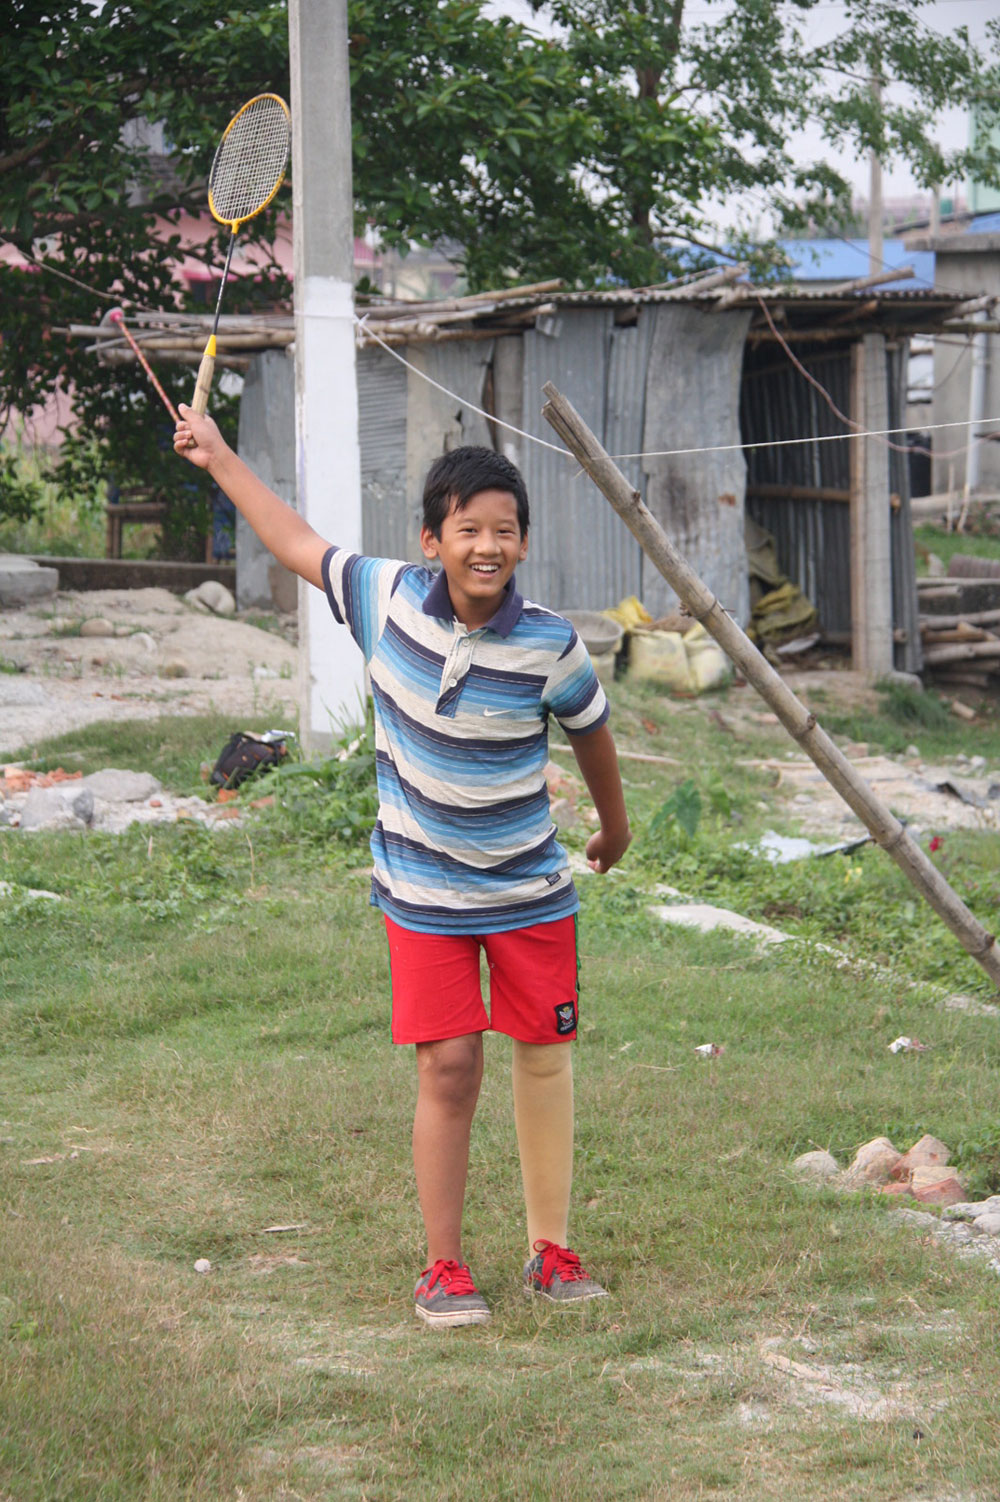 c_Prasiit-Sthapit_HI__Nishan_-13_-playing-badminton-in-Nepal.jpg